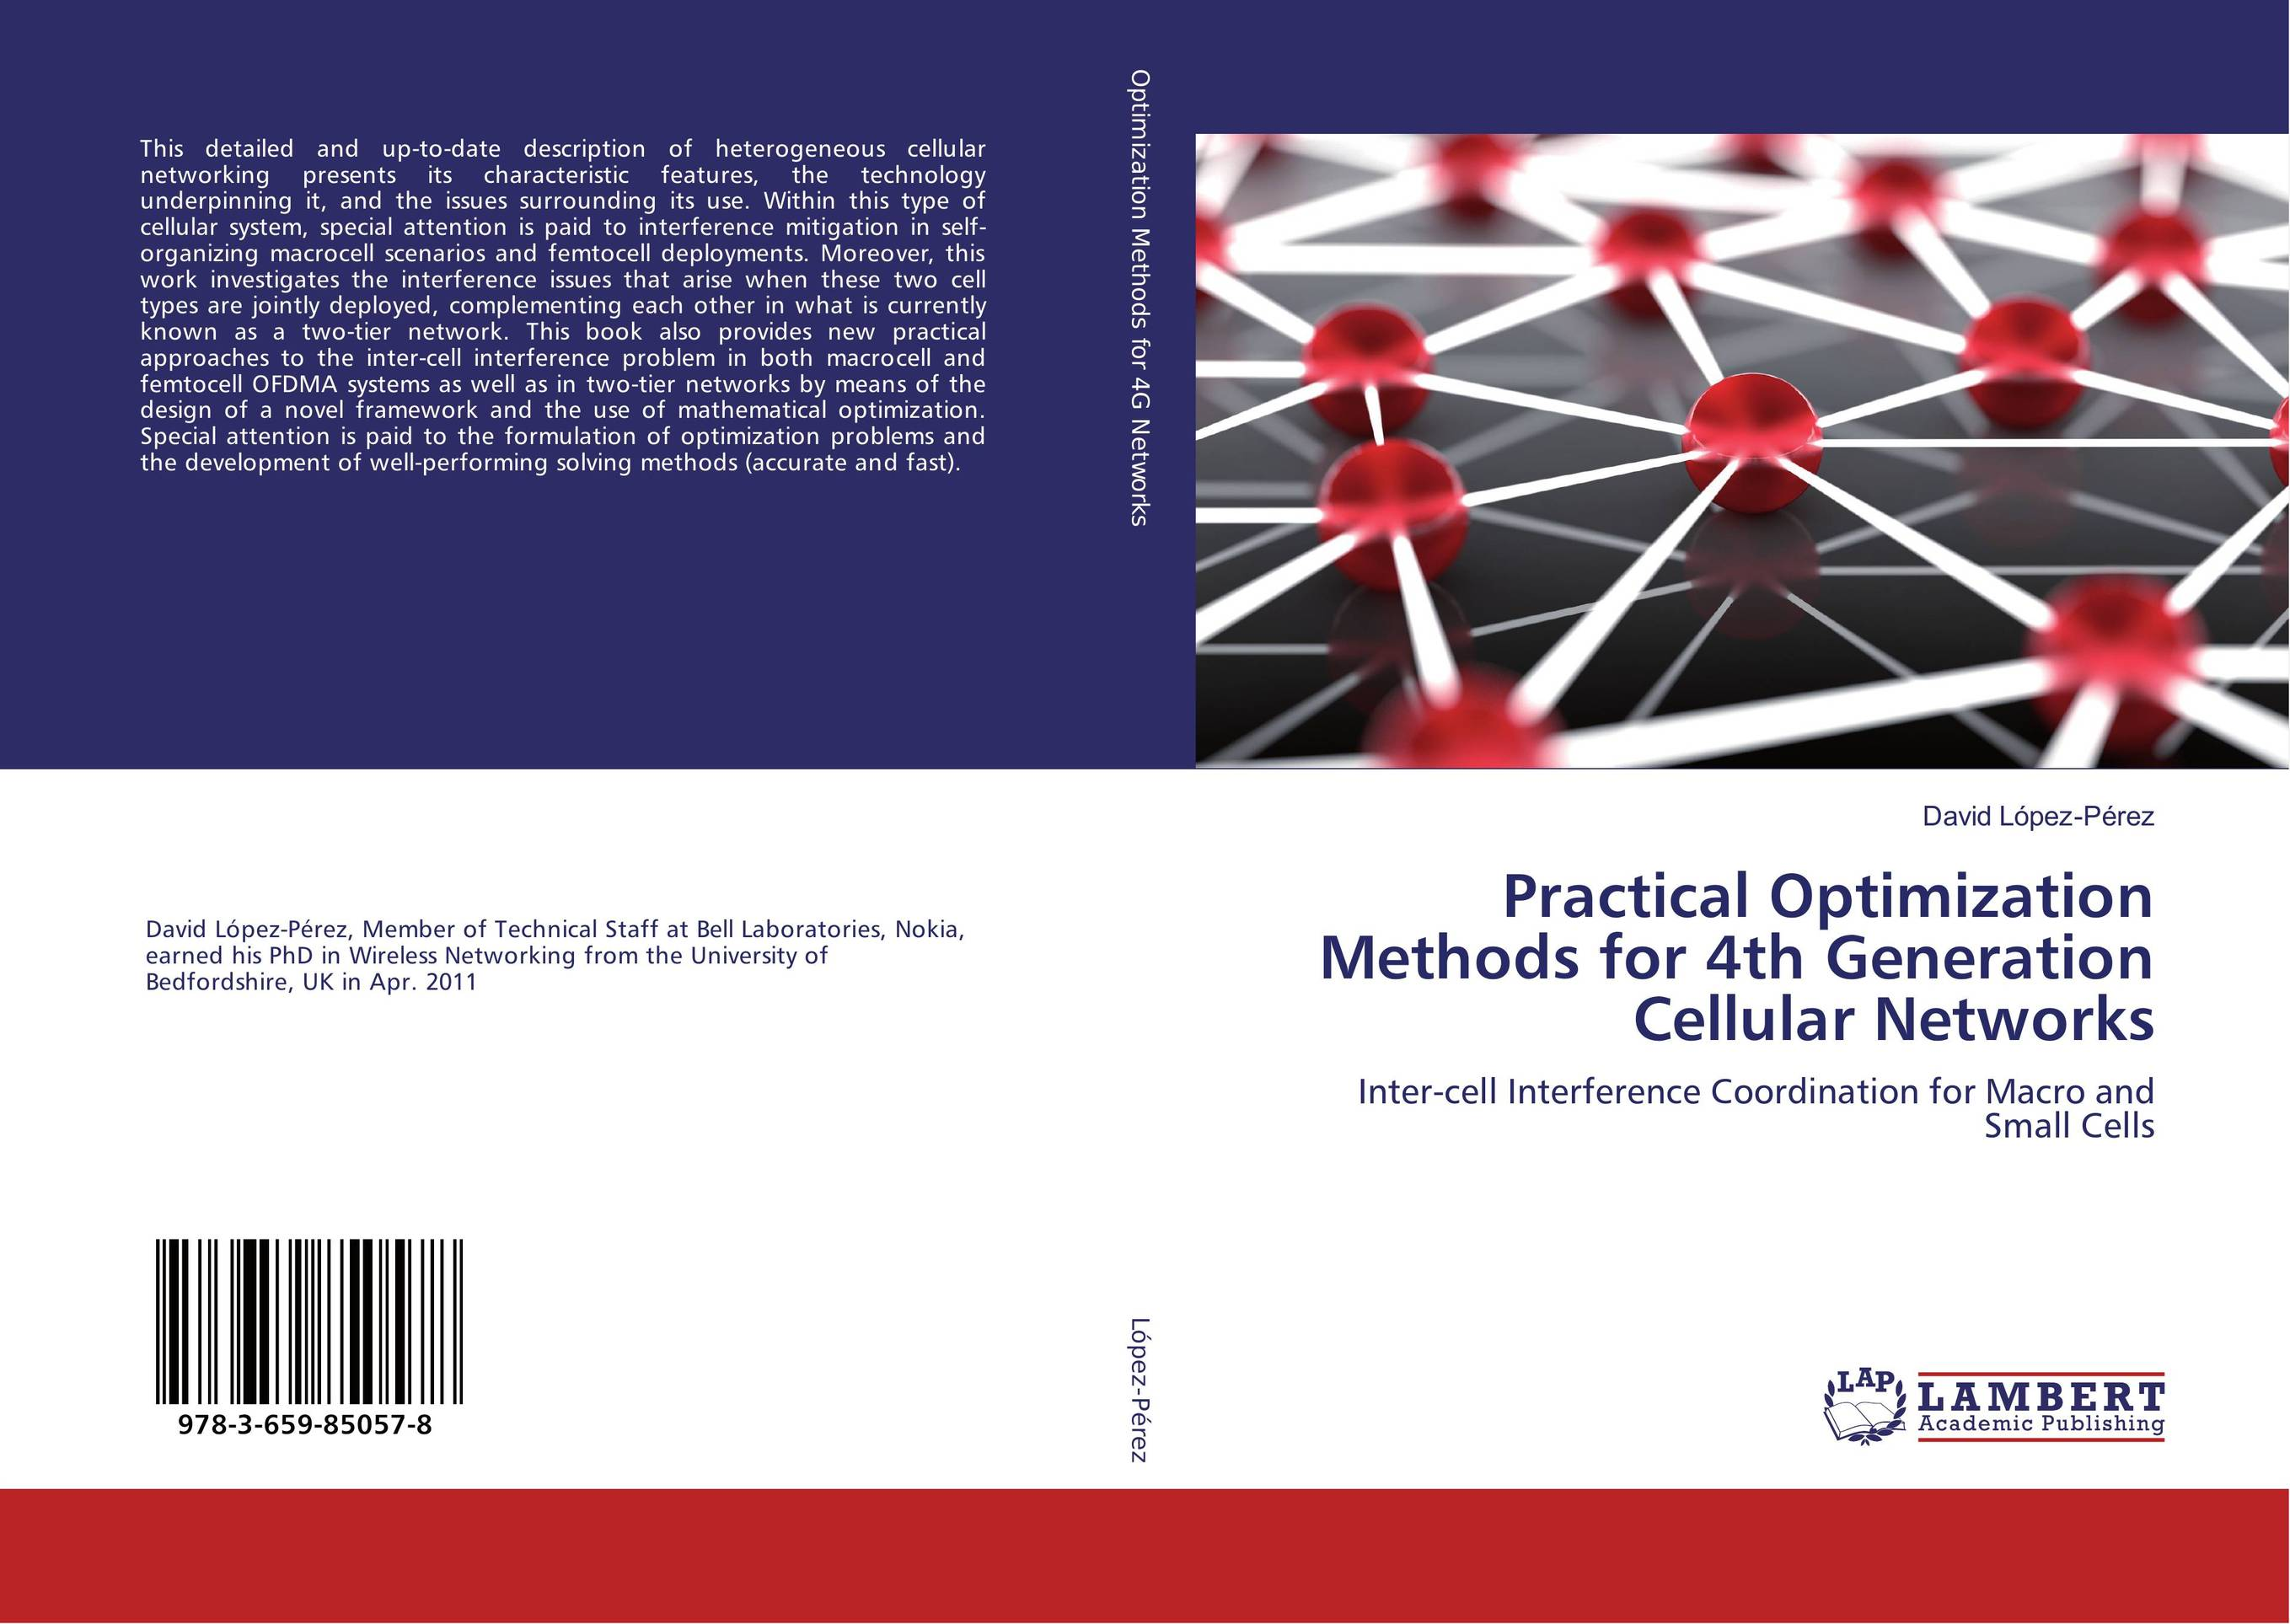 Practical Optimization Methods for 4th Generation Cellular Networks practical global optimization computing methods in molecular modelling